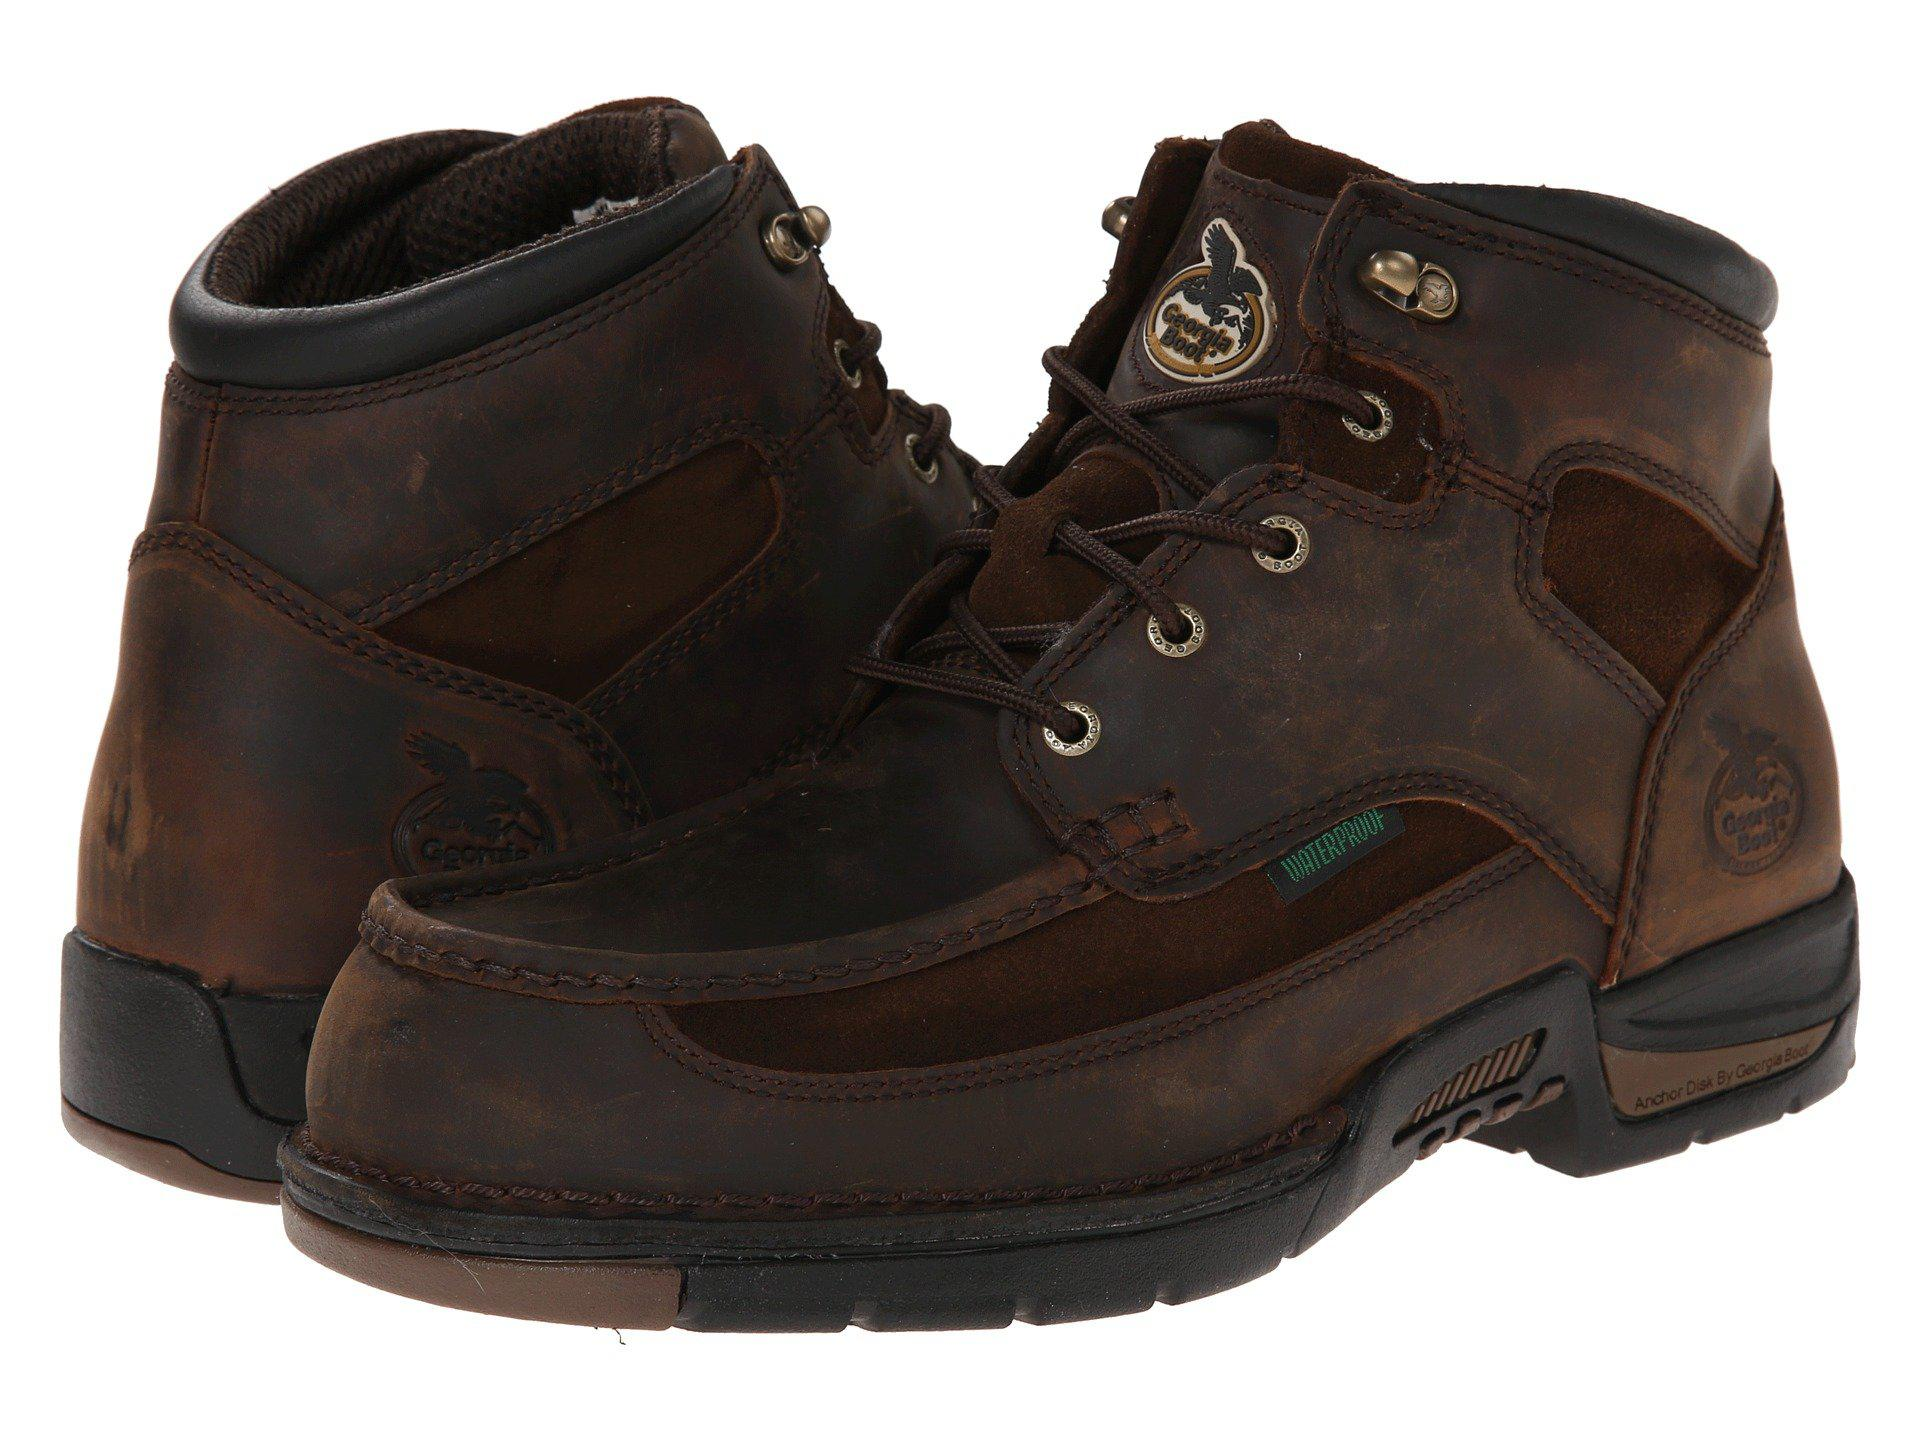 c8f25311d51 Lyst - Georgia Boot Athens 6 Moc Toe Lace Up (brown) Men's Work Lace ...